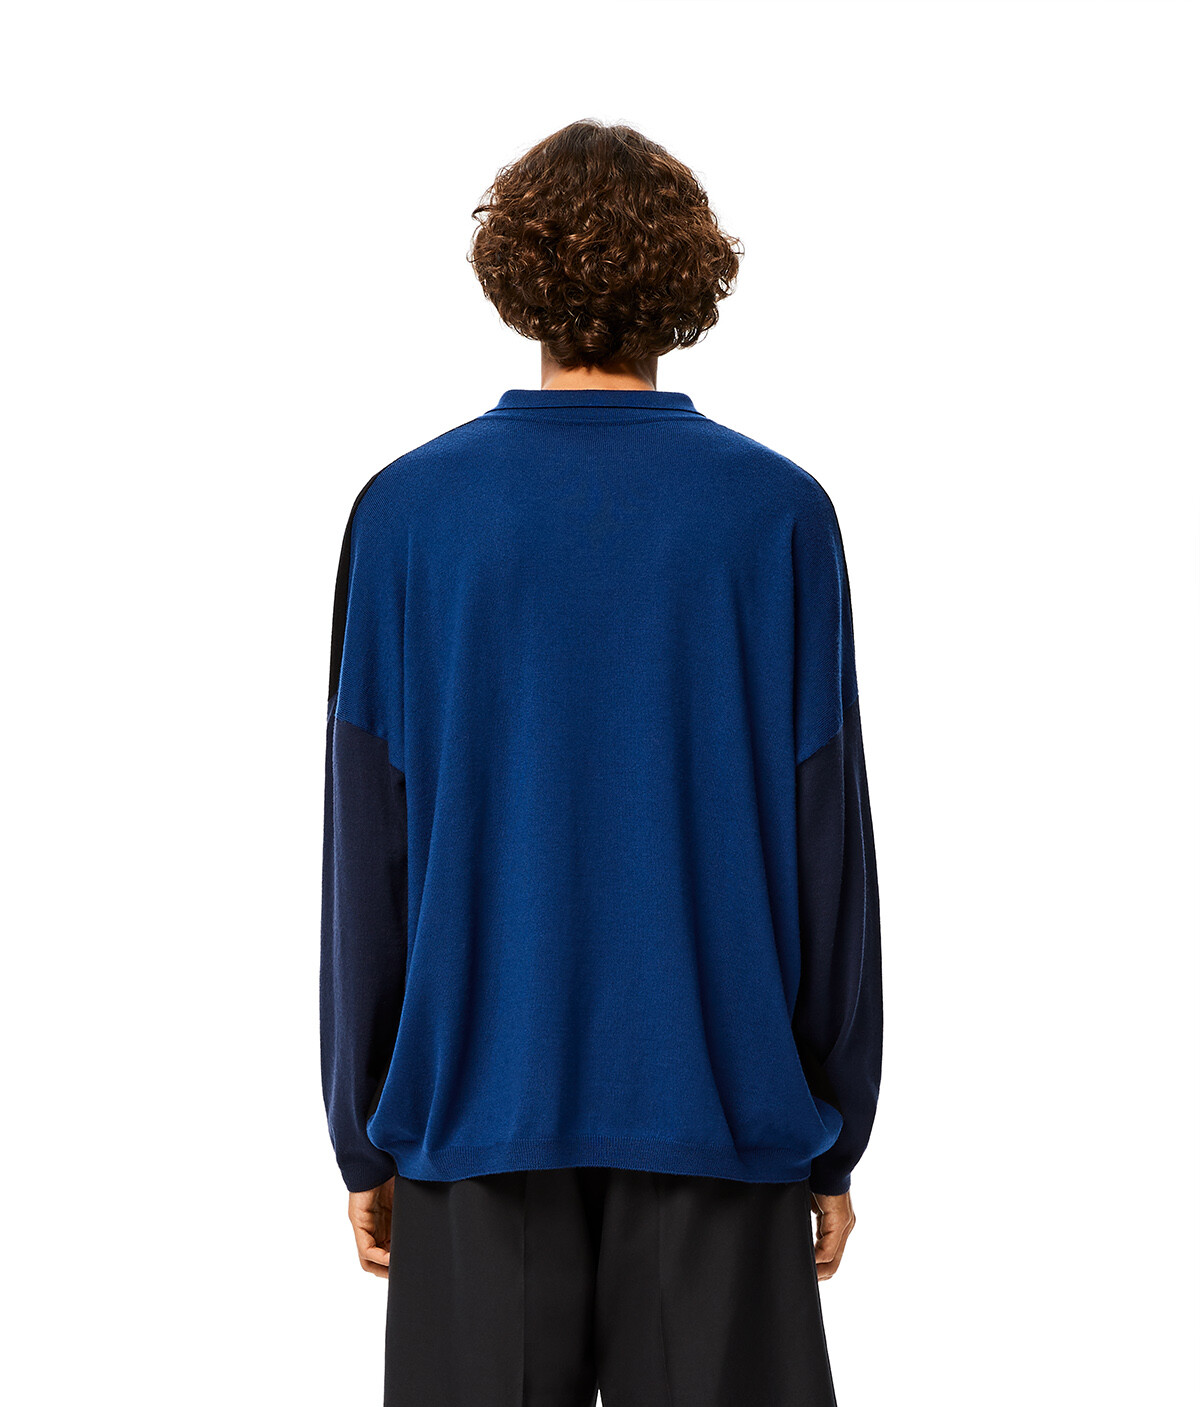 LOEWE Ov Poloneck Sweater 黑色/藍色 front